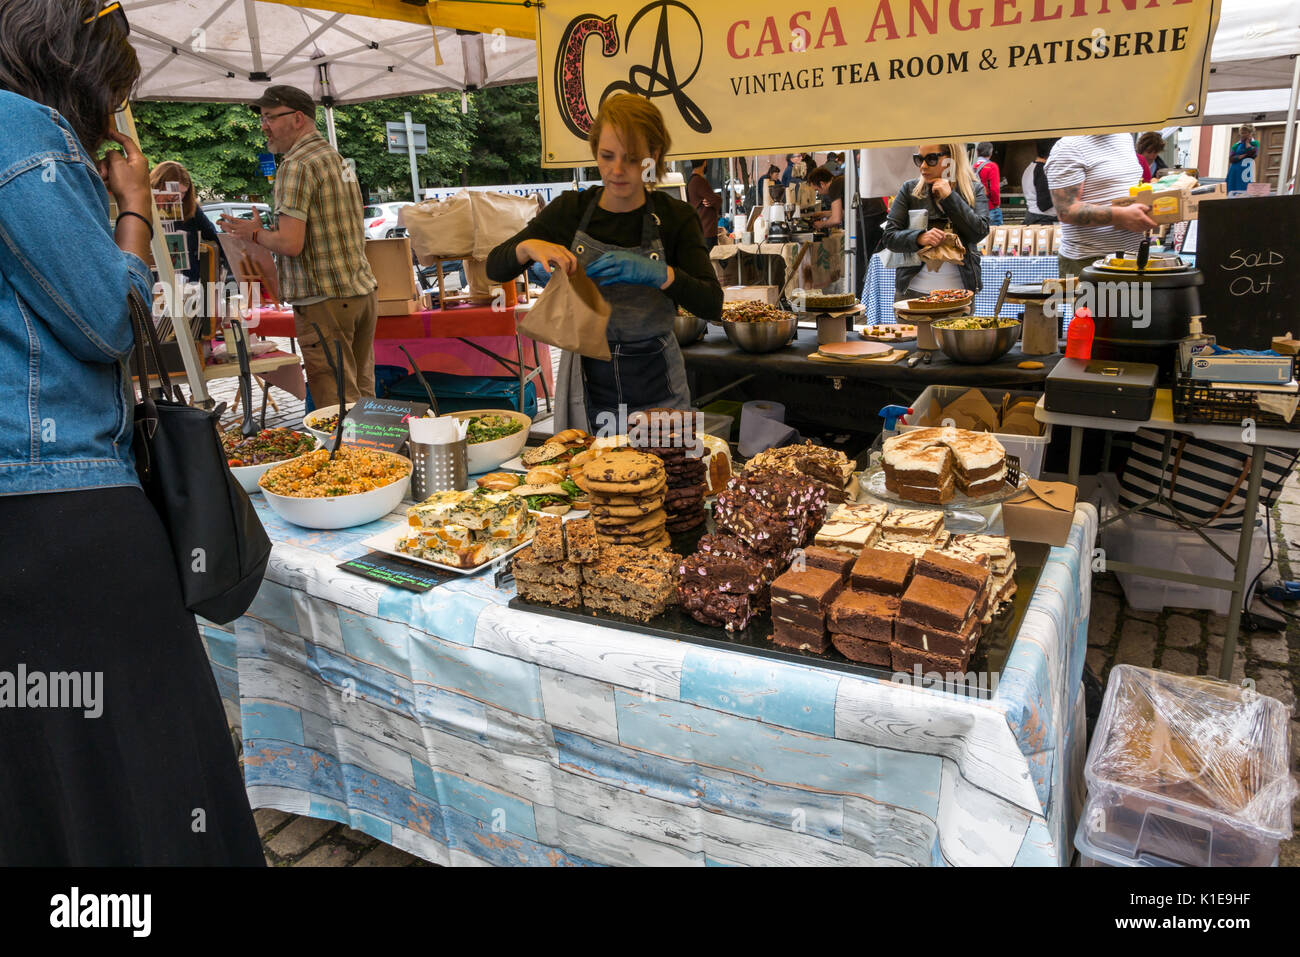 Dock Place, Leith, Edinburgh, Scotland, UK. Leith Saturday Farmers market with woman buying cakes at Casa Angelina Vintage Tearoom Patisserie stall - Stock Image